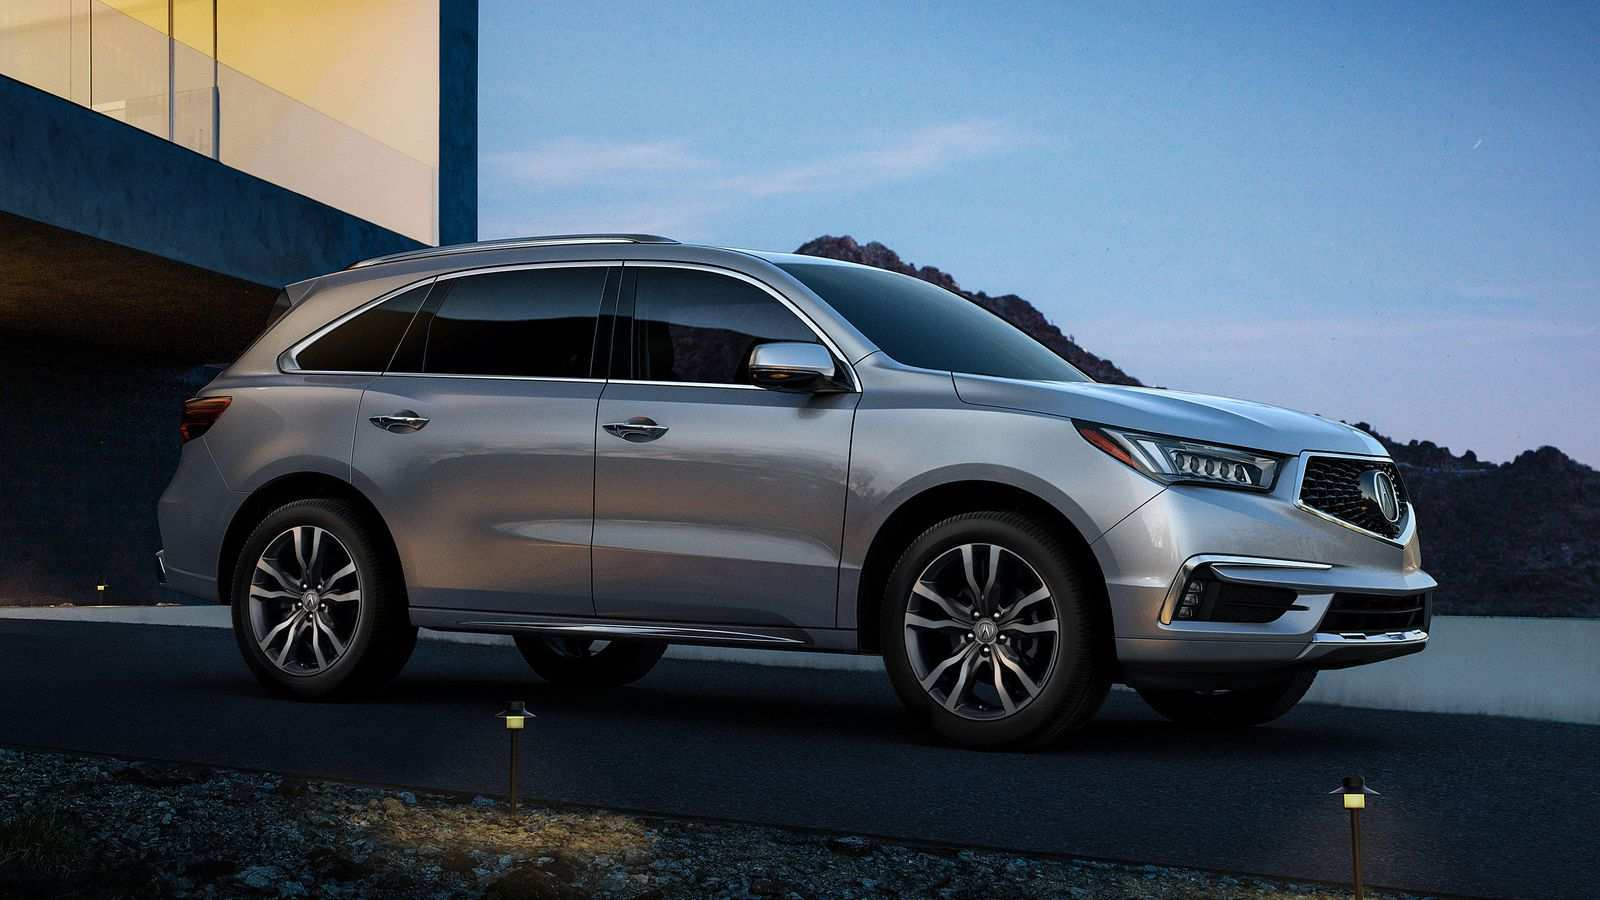 96 Concept of When Does The 2020 Acura Mdx Come Out Model for When Does The 2020 Acura Mdx Come Out